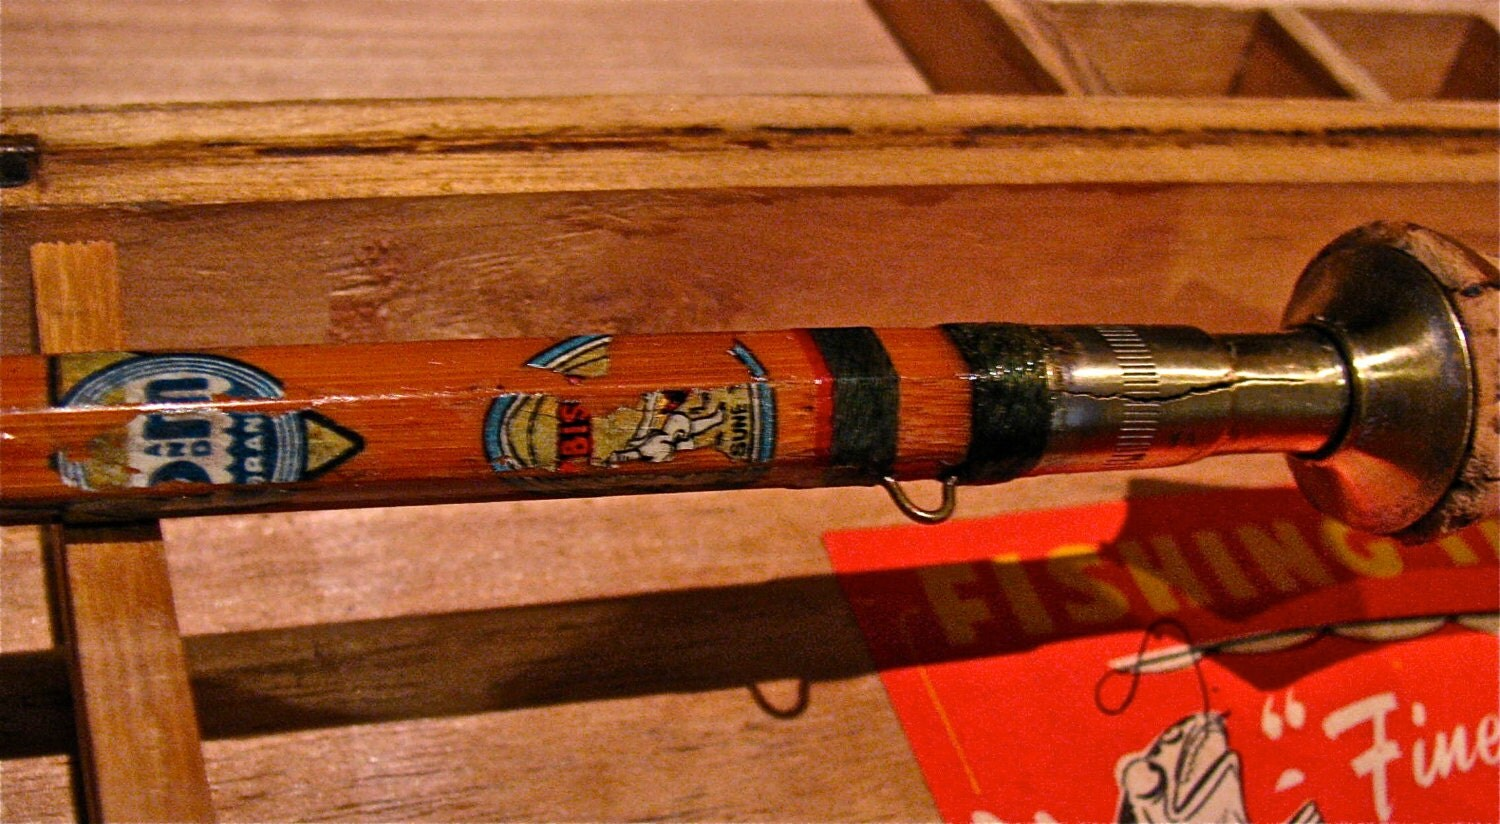 Vintage Bamboo Fly Fishing Rod Amp Wooden Box By